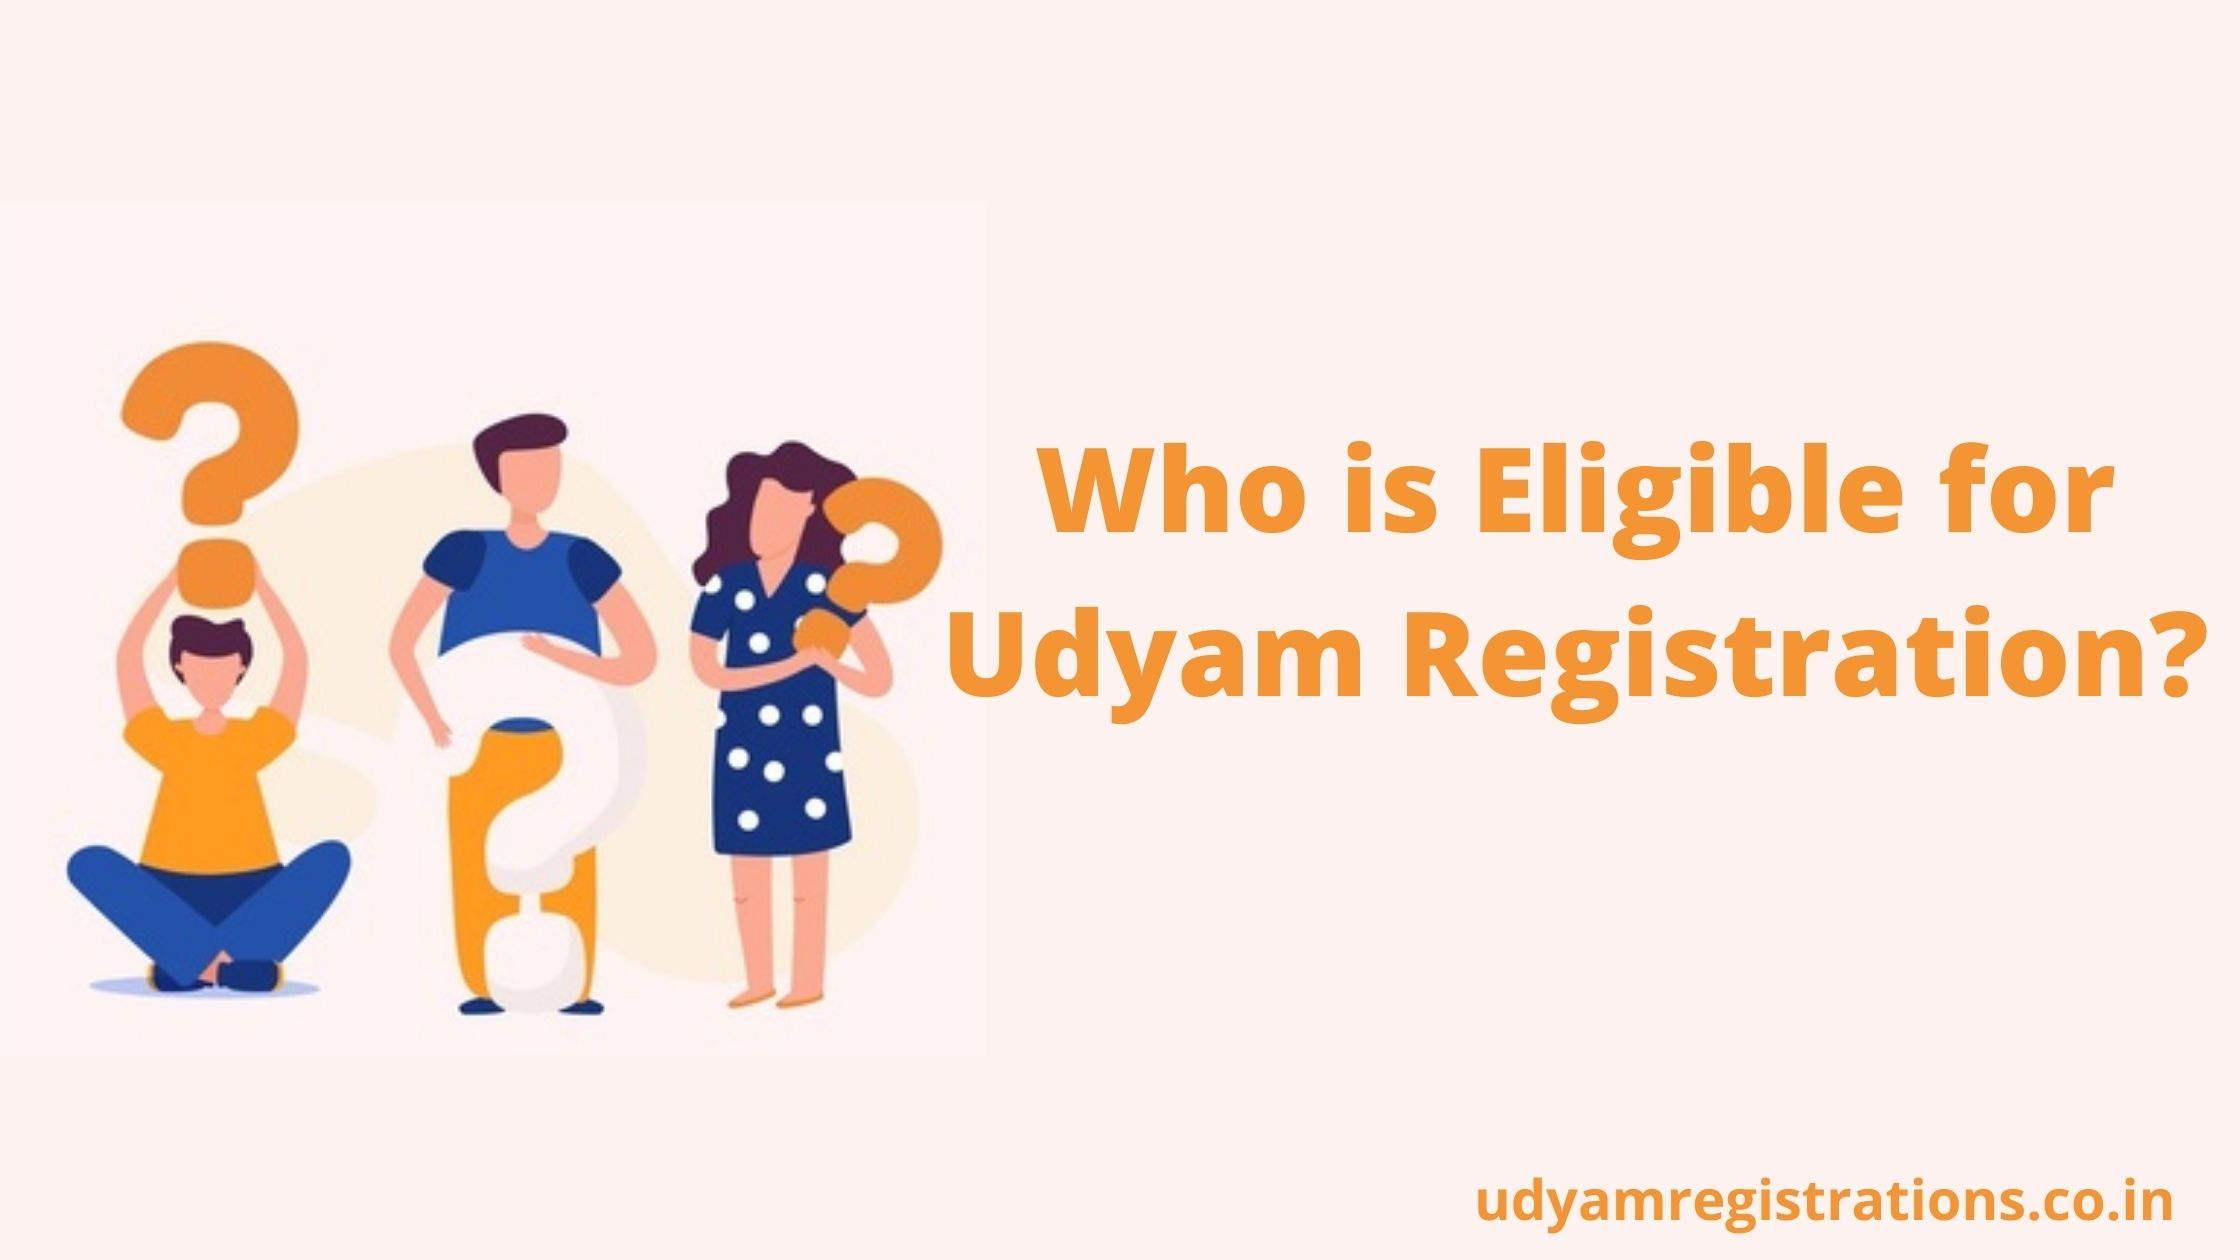 Who is Eligible for Udyam Registration?